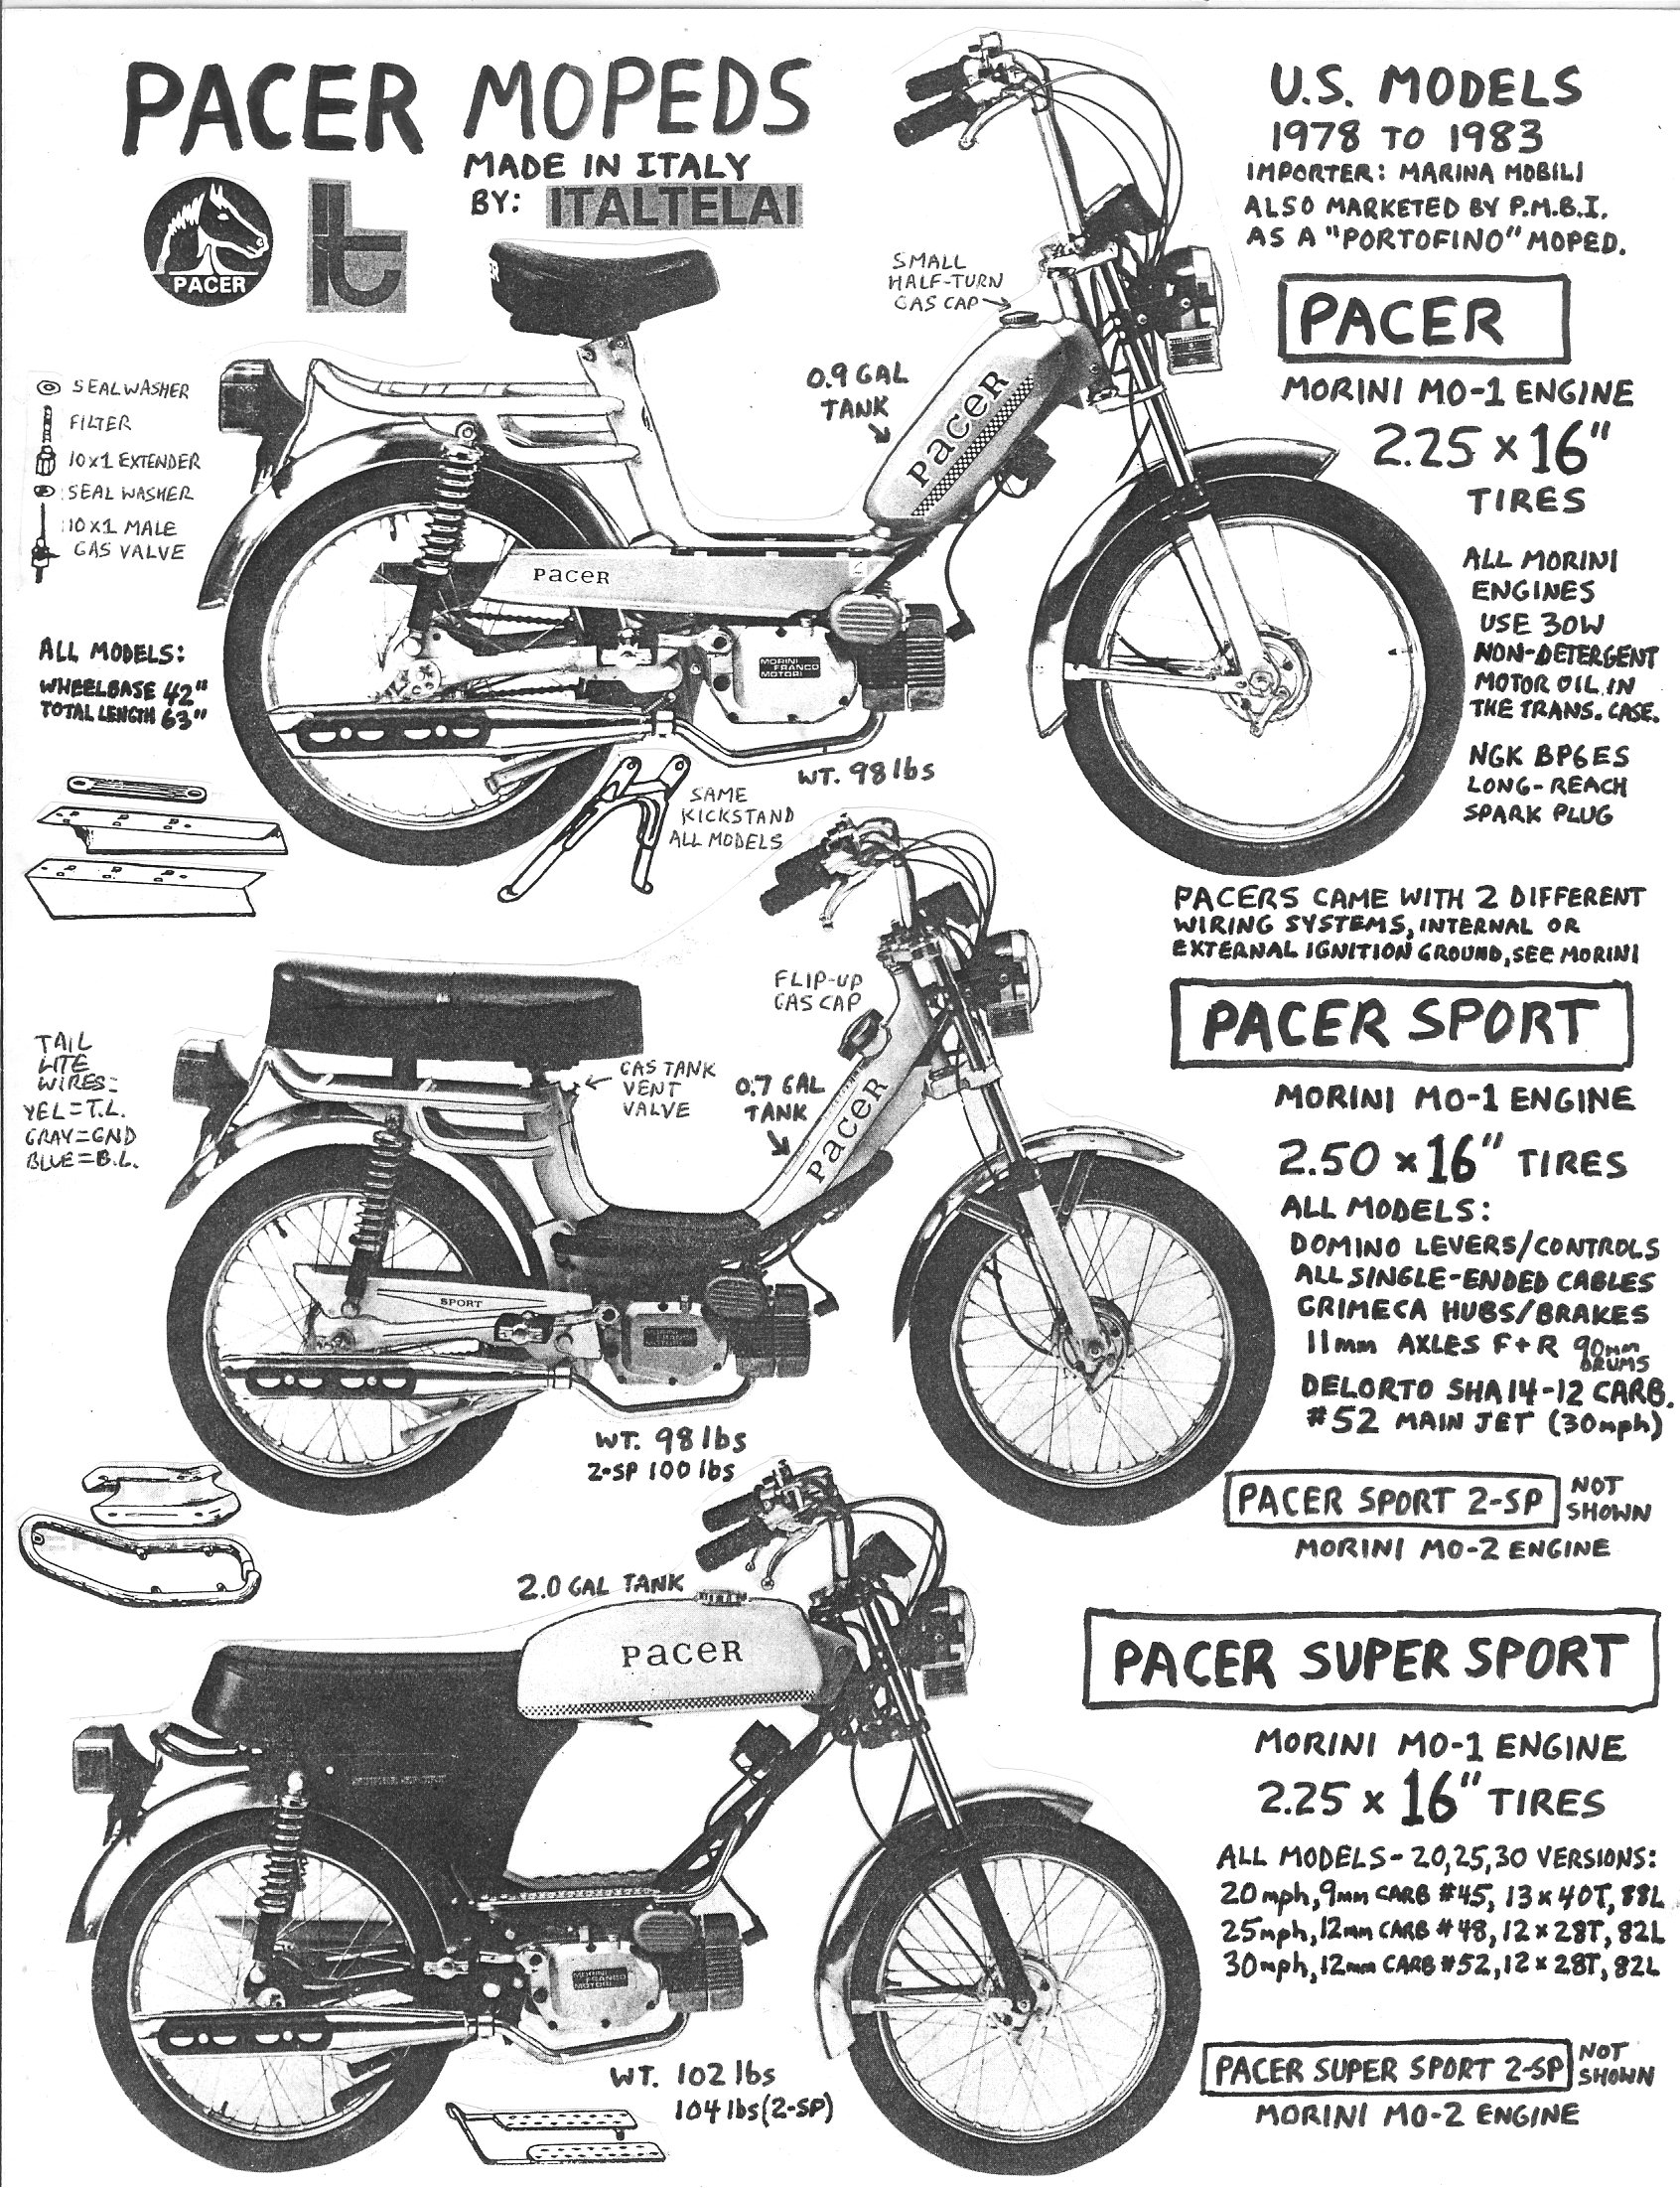 Majestic Honda Parts >> Pacer Parts « Myrons Mopeds